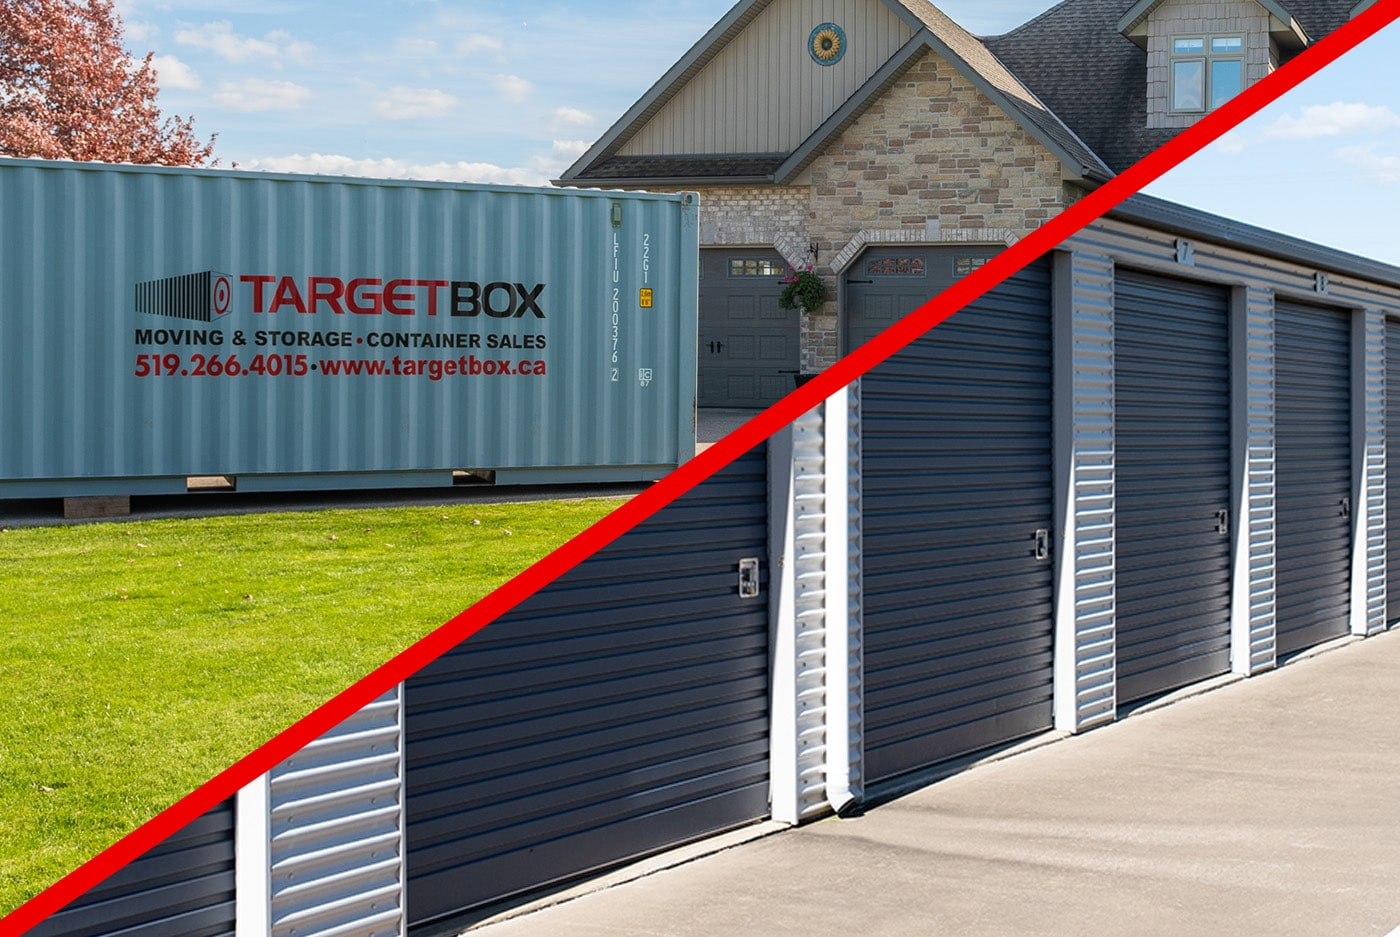 Shipping Containers Vs. Self-Storage Units: Which option is the best?